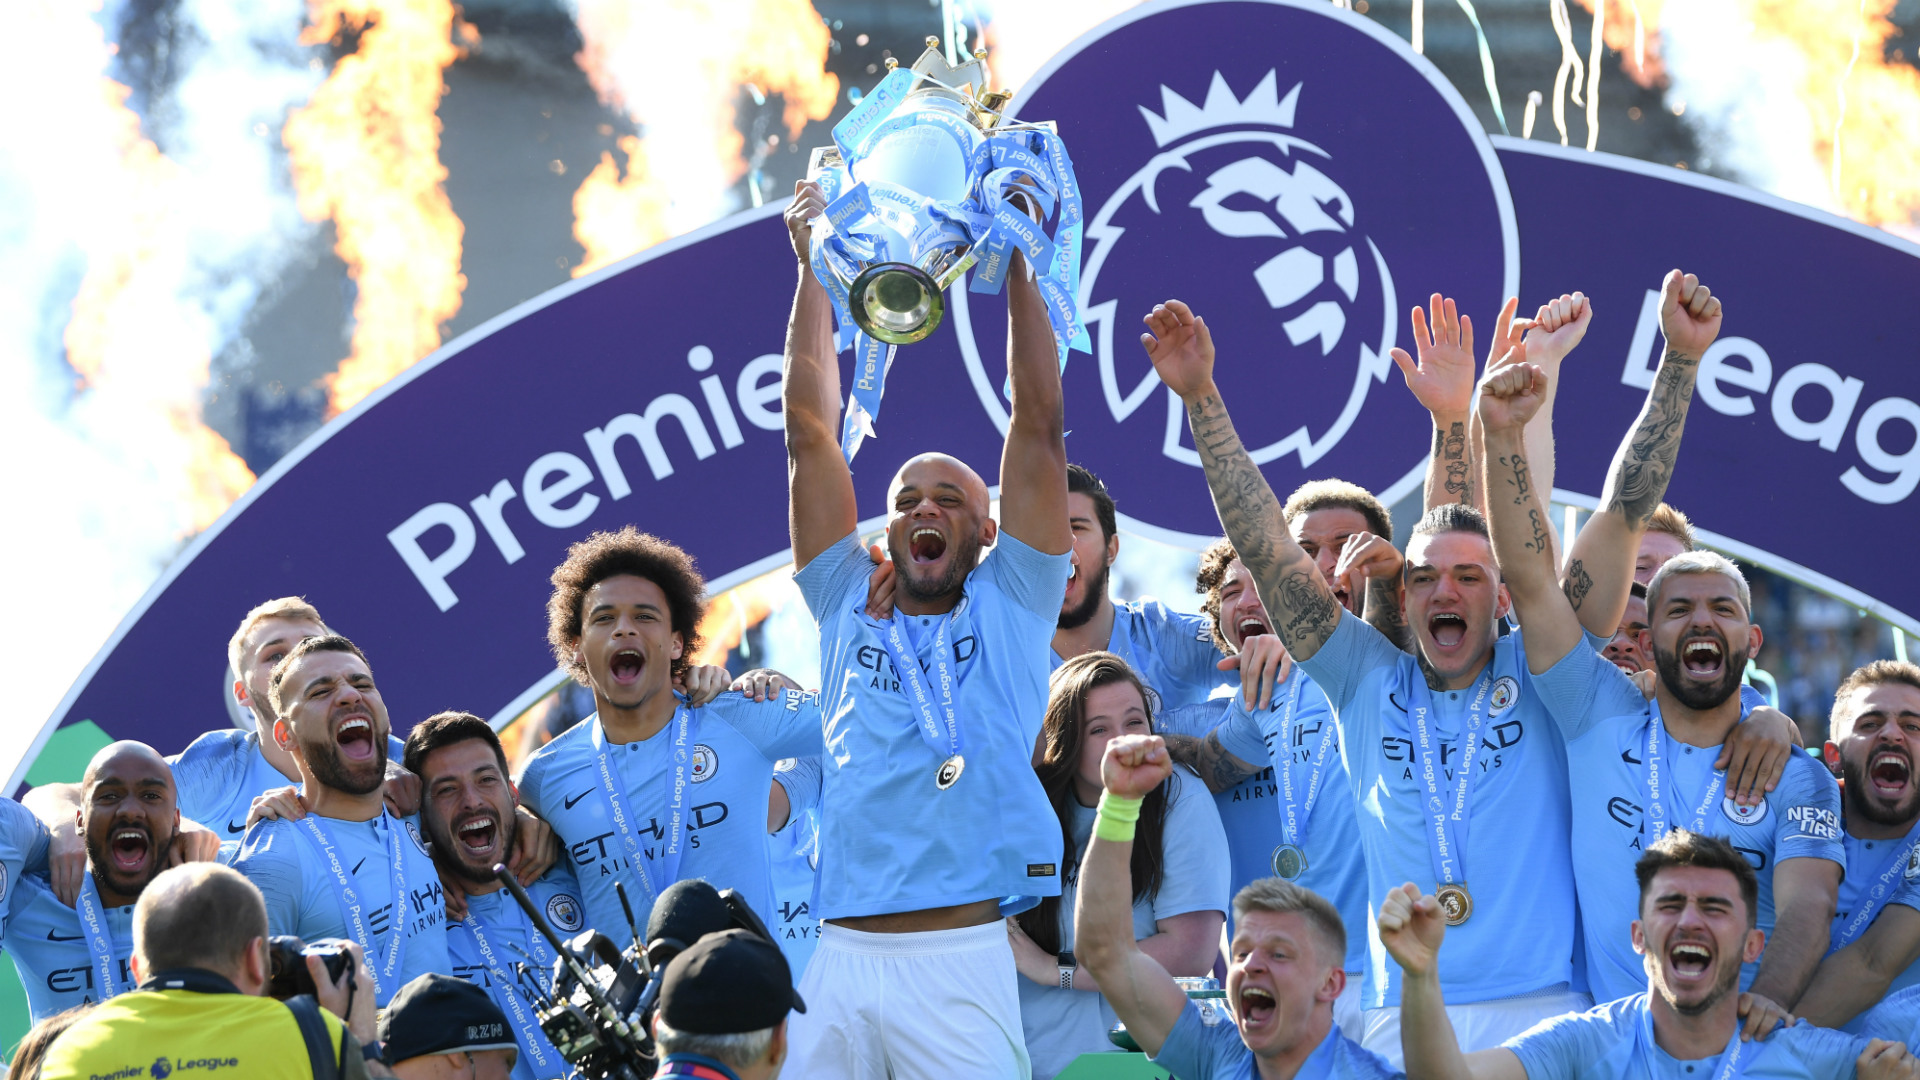 Premier League 2019-20 season tickets: How much does it cost for each club?